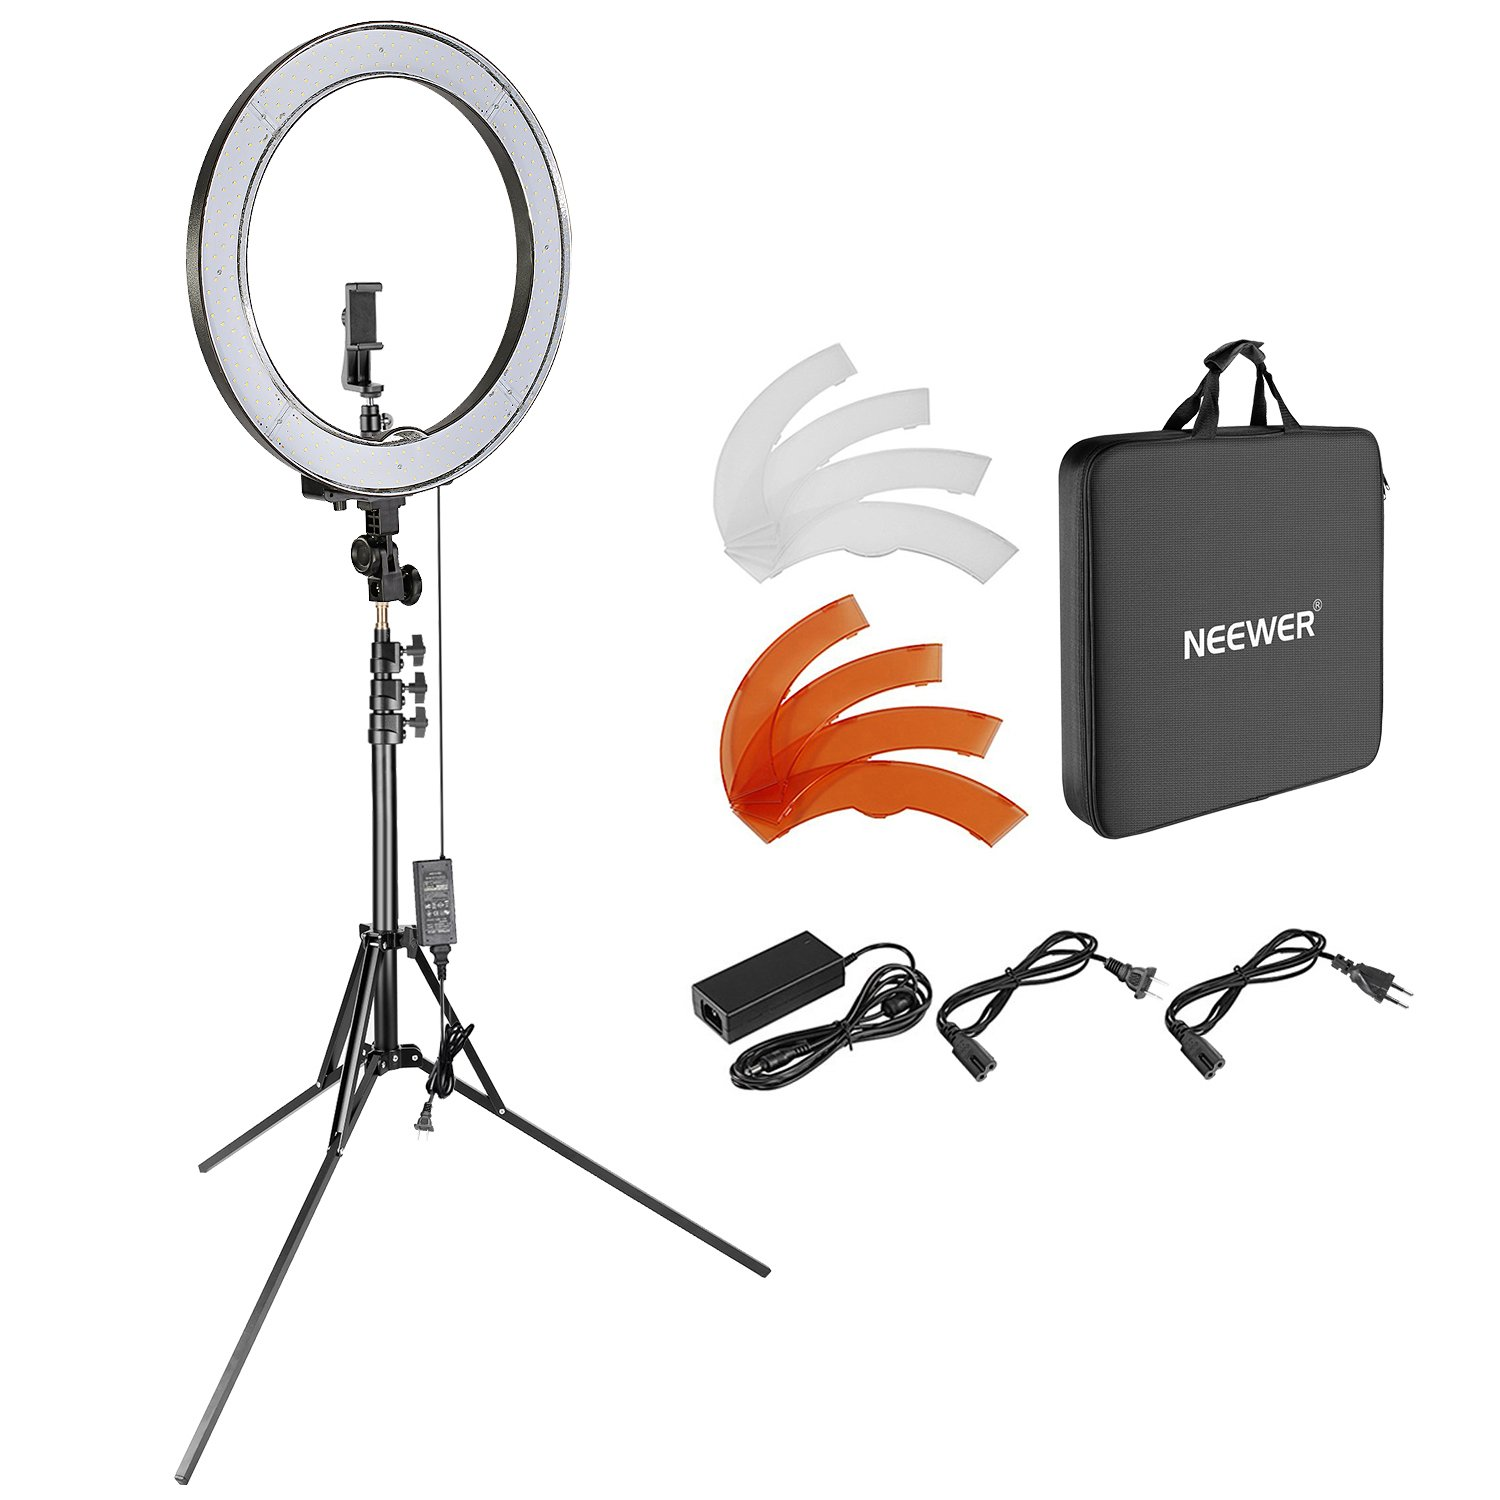 Neewer Upgraded 18-inch Outer Dimmable SMD LED Ring Light with 79-inch Stand, Rotatable Phone Holder for Smartphone/Camera Make up YouTube Video Shooting (EU/US Plug, Bag Included) by Neewer